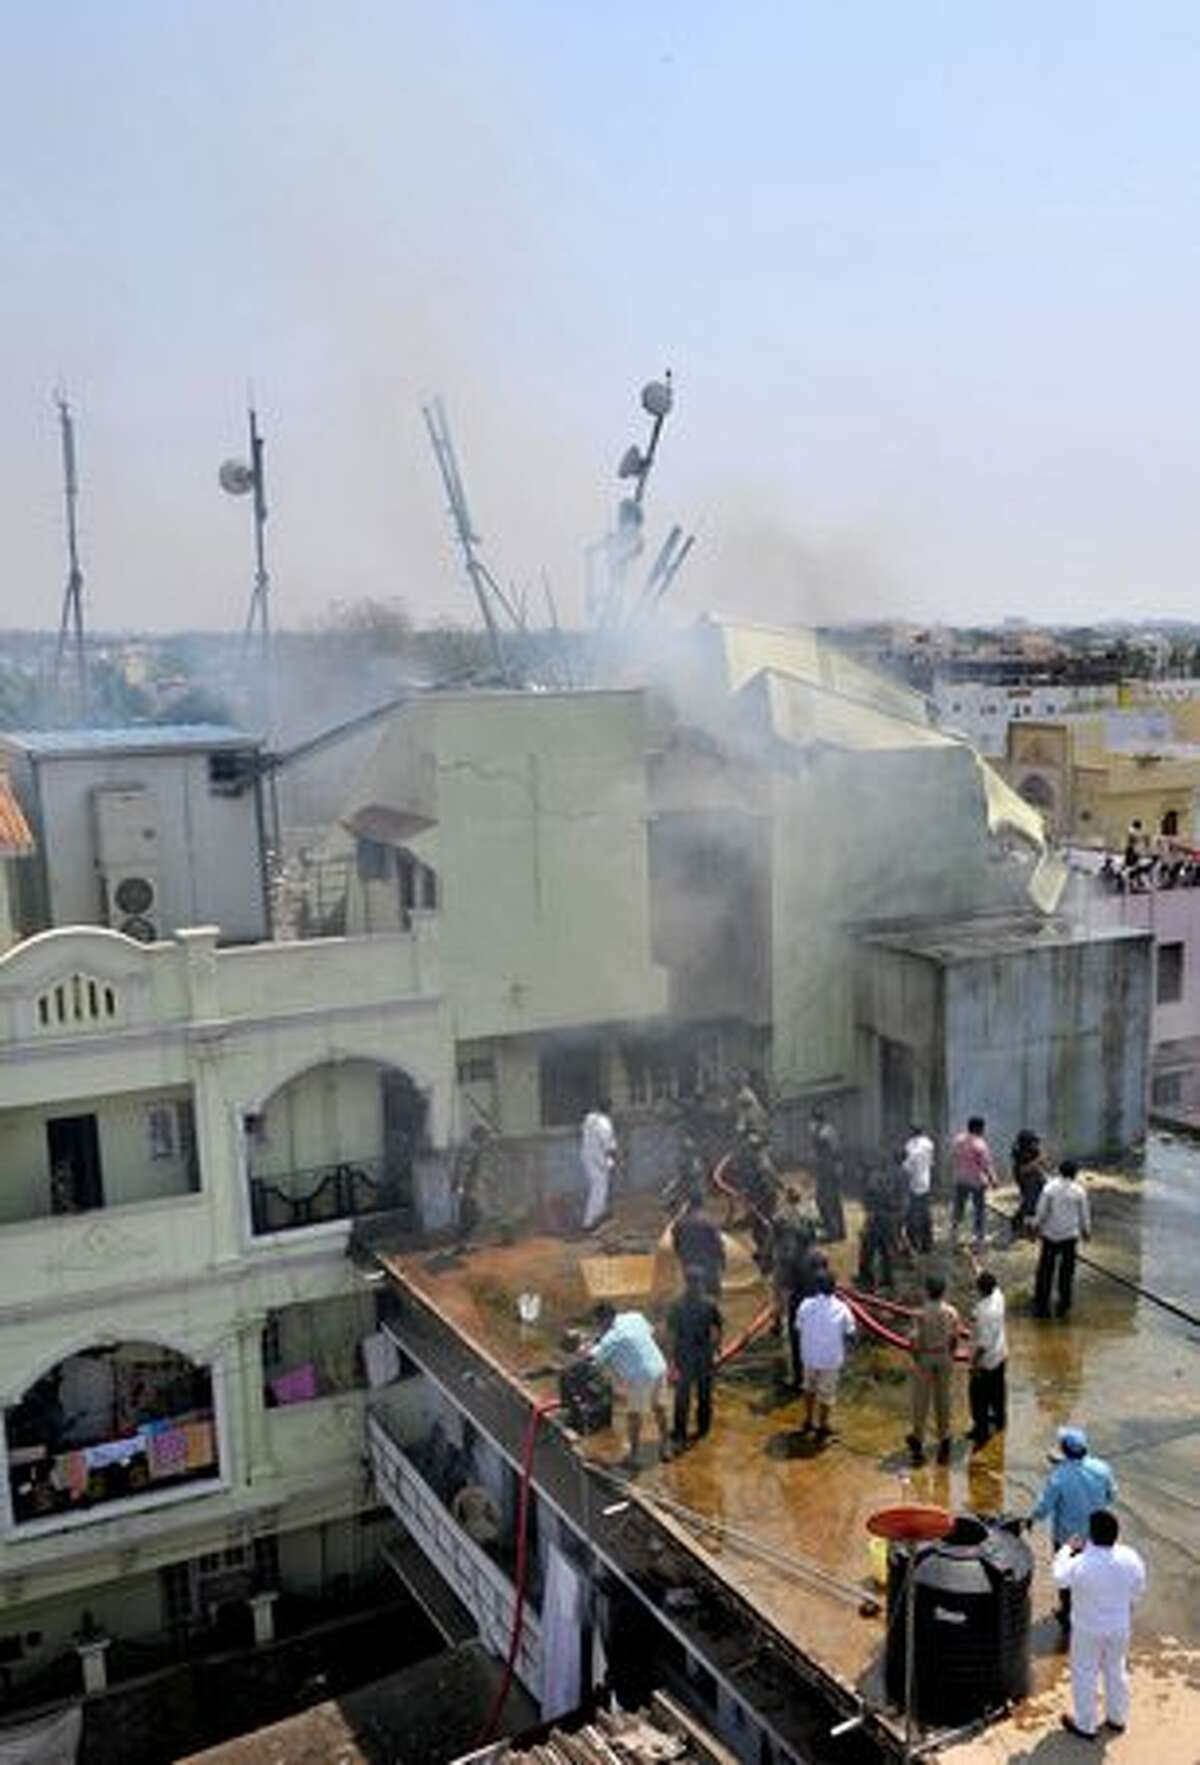 Indian residents and rescue personnel attempt to douse a fire in a building after an aircraft of The Indian Naval Aerobatic Team 'Surya Kiran' crashed during the India Aviation 2010 show at Begumpet Airport in Hyderabad on March 3, 2010. A navy aircraft taking part in an acrobatics show on the first day of an air show in the southern Indian city. The plane, a two-seater Kiran MK-II built by the state-run Hindustan Aeronautics, was part of a four-plane formation when it crashed. The accident occurred on the opening day of the India Aviation 2010 show, a five-day civil aviation exhibition.